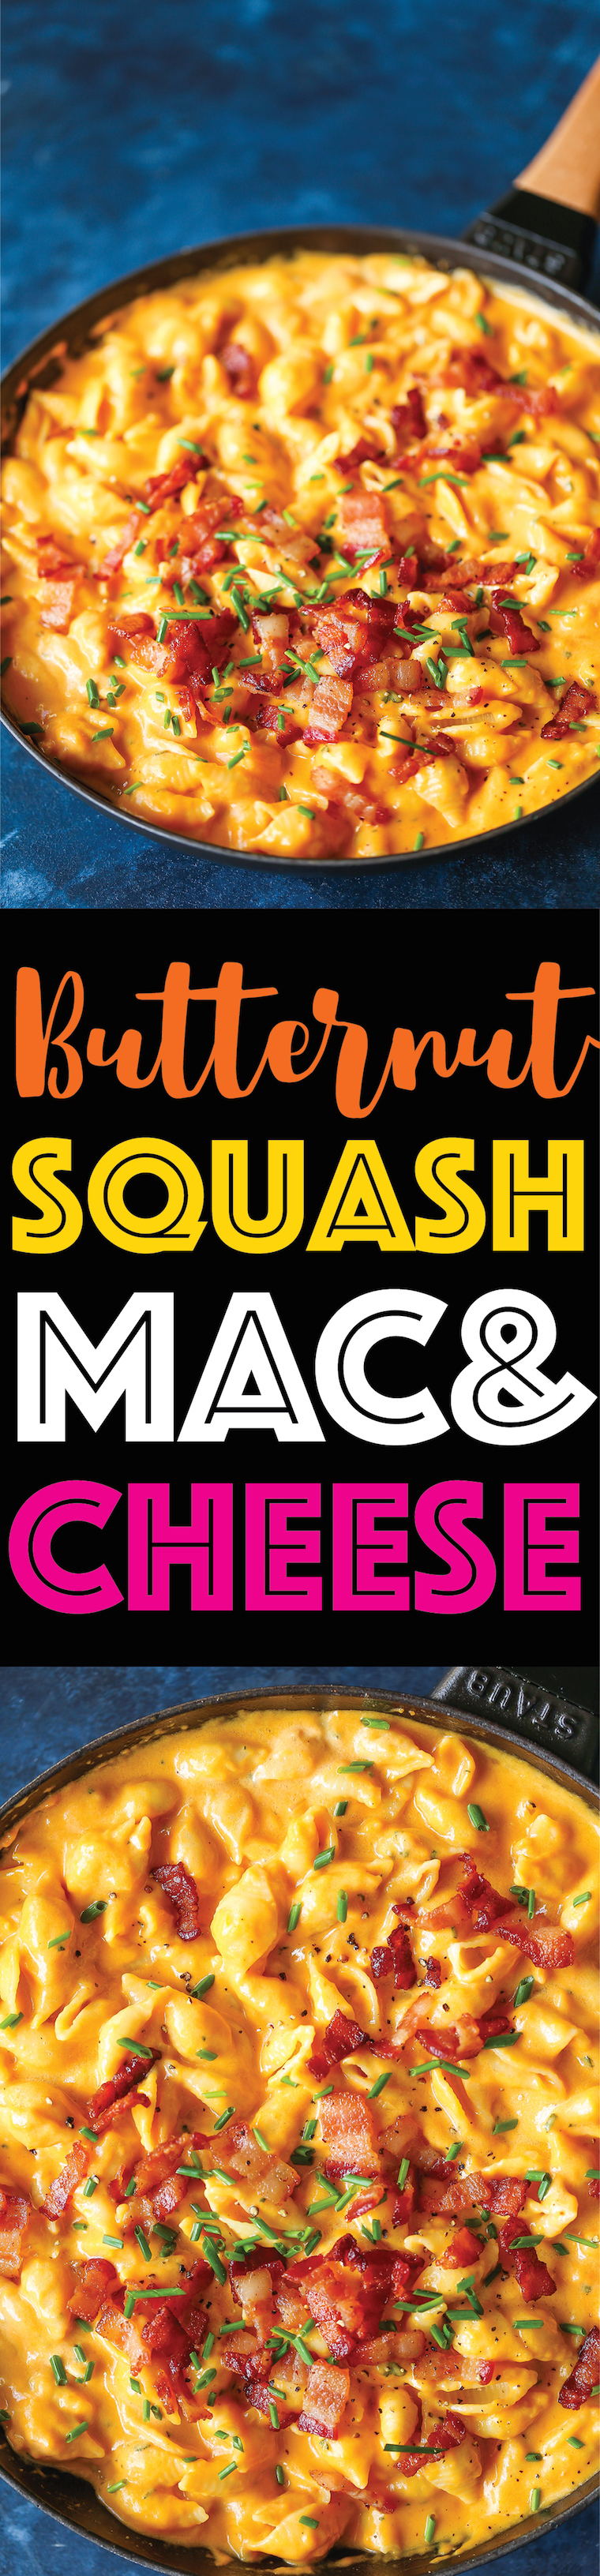 Butternut Squash Mac and Cheese - Mac and cheese at it's finest! So creamy, so rich + so amazing yet it's so much healthier than traditional mac and cheese!